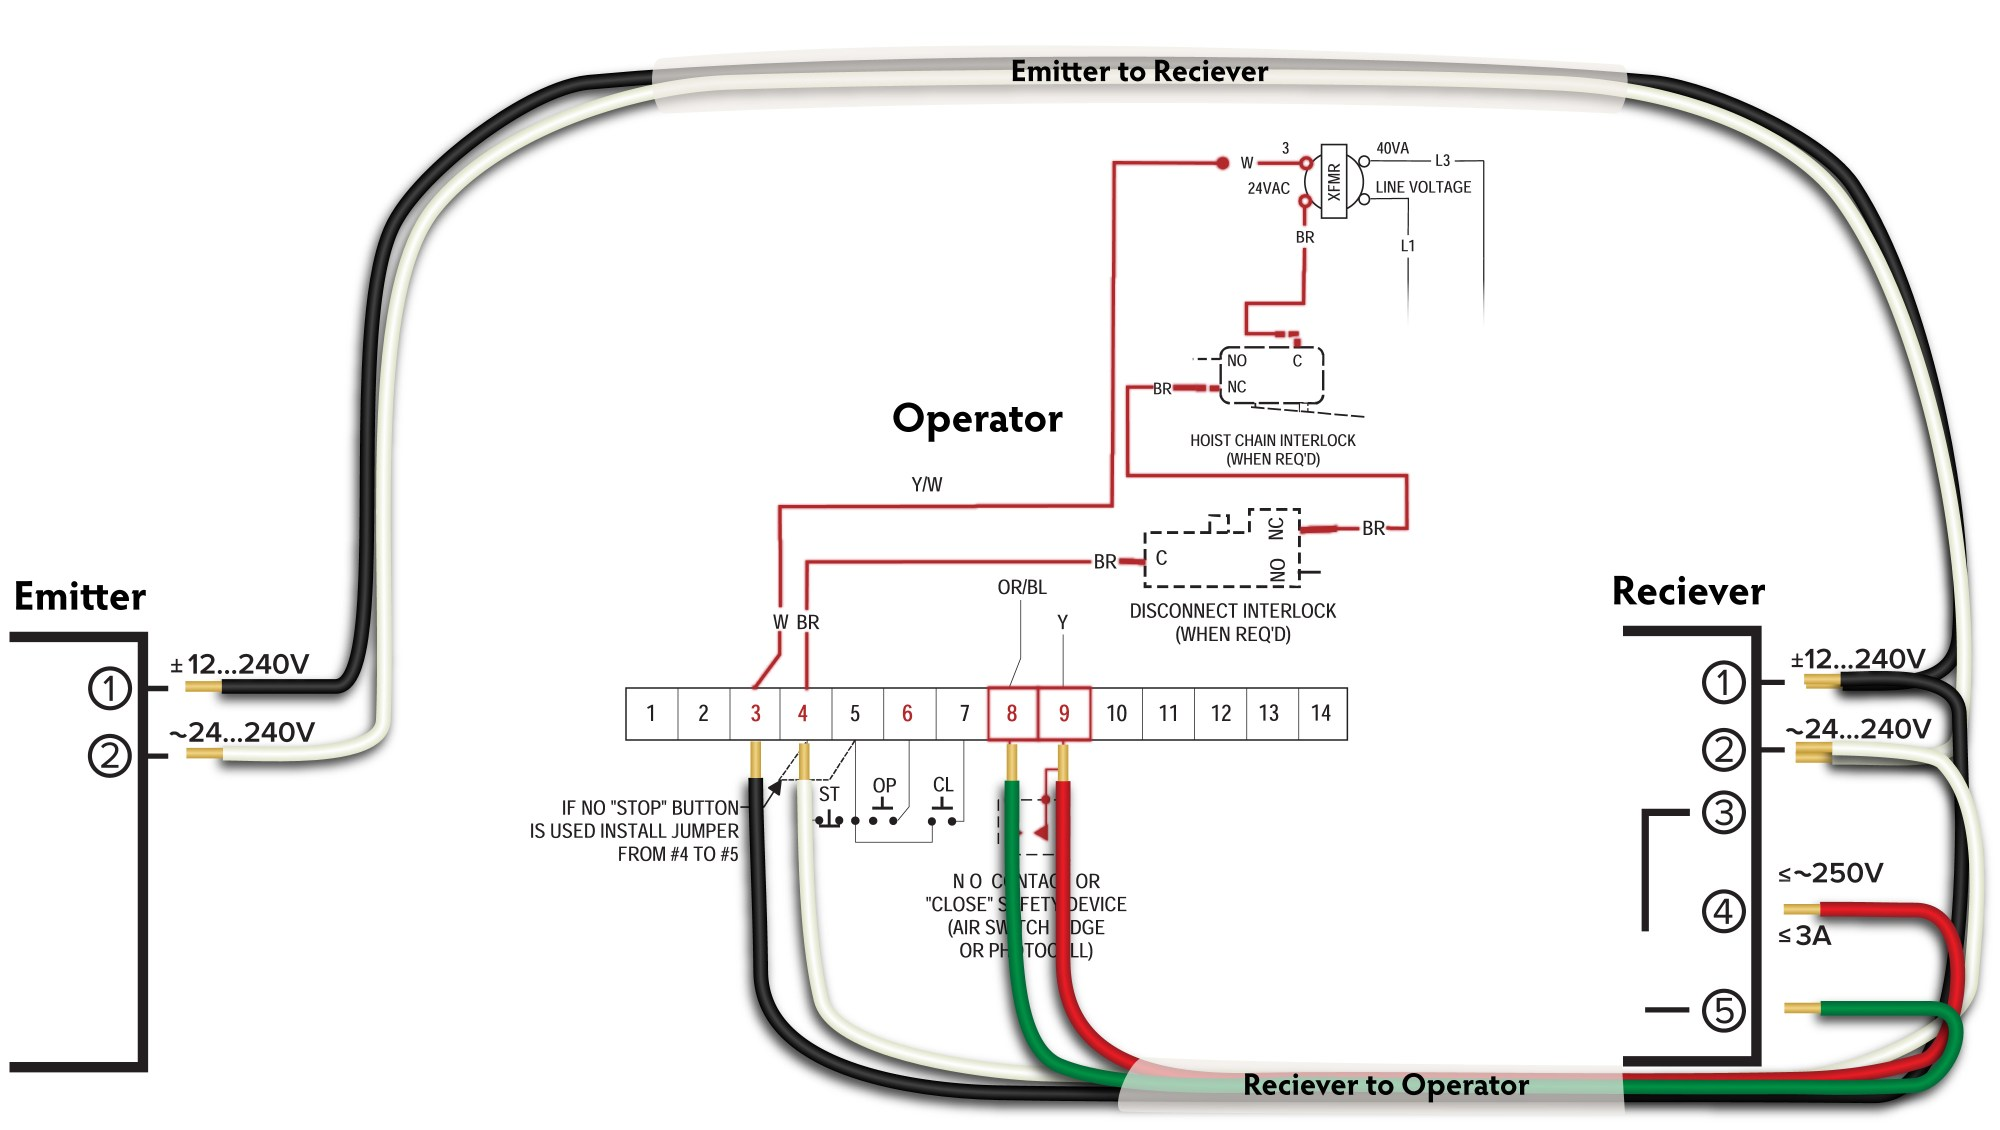 hight resolution of in 2016 we showed the critical wiring connections on our blog titled how to install omron e3jm photo eyes on powermaster operators